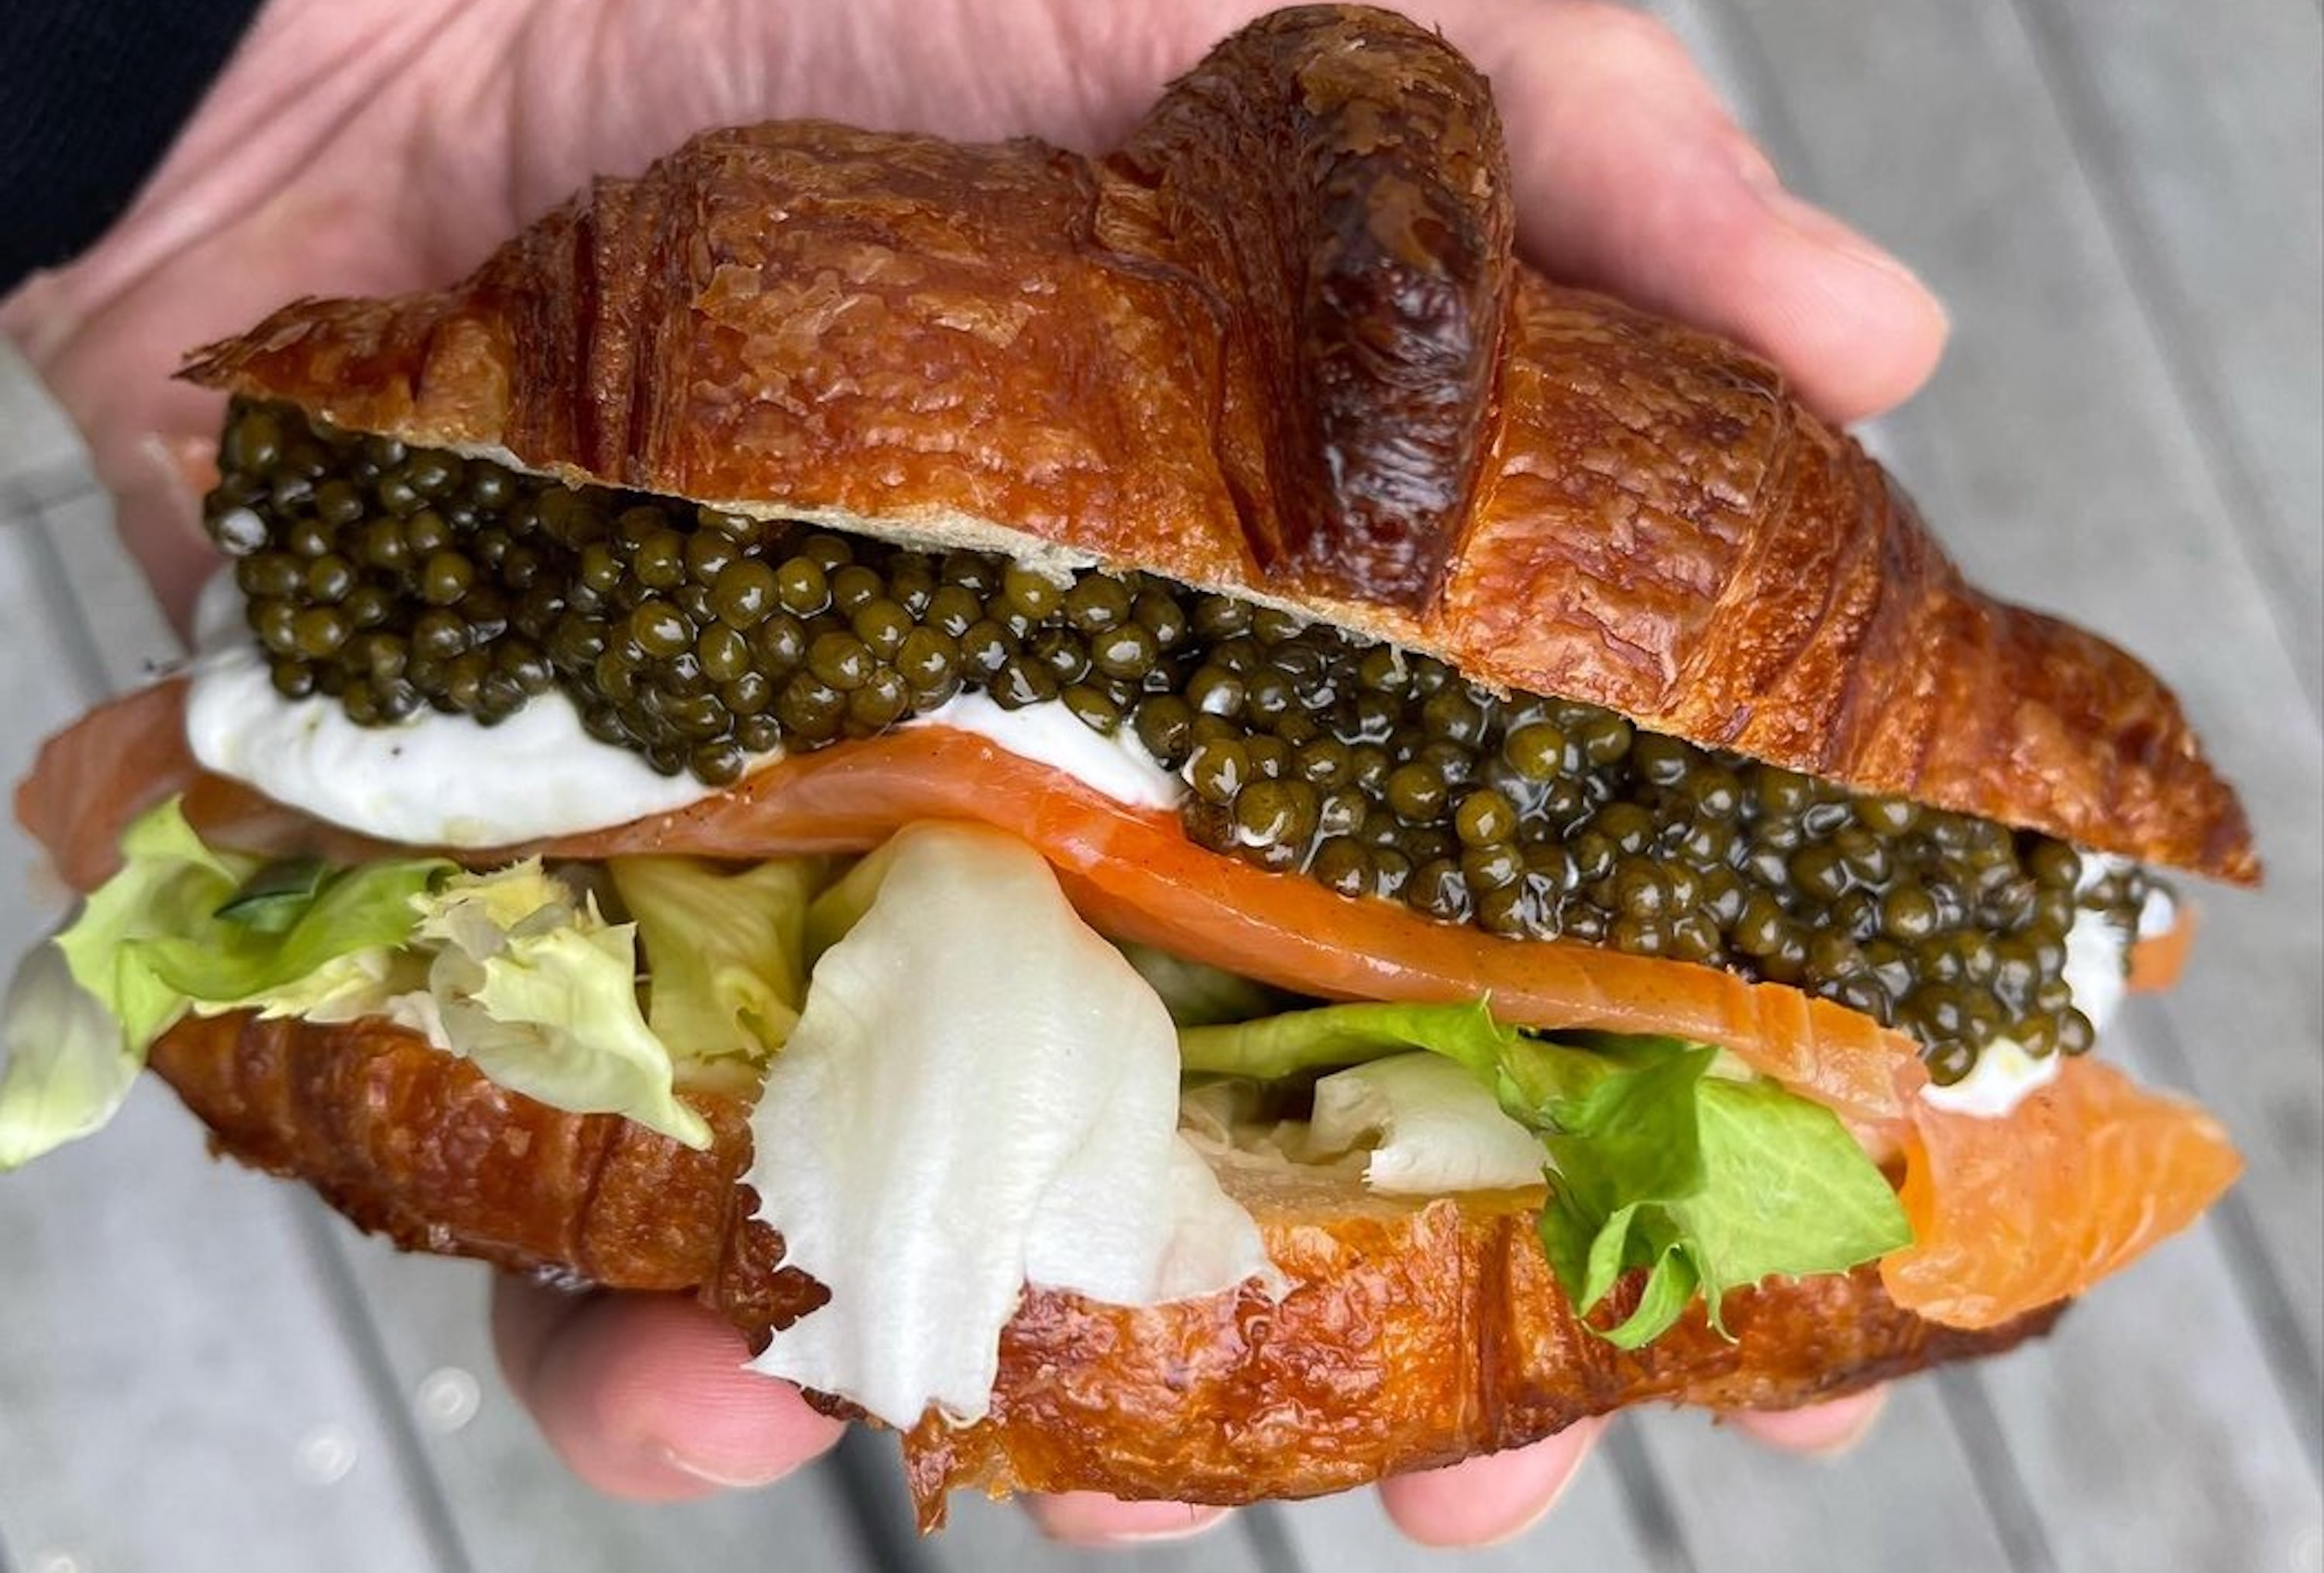 A croissant stuffed with smoked salmon, cheese, lettuce, and caviar